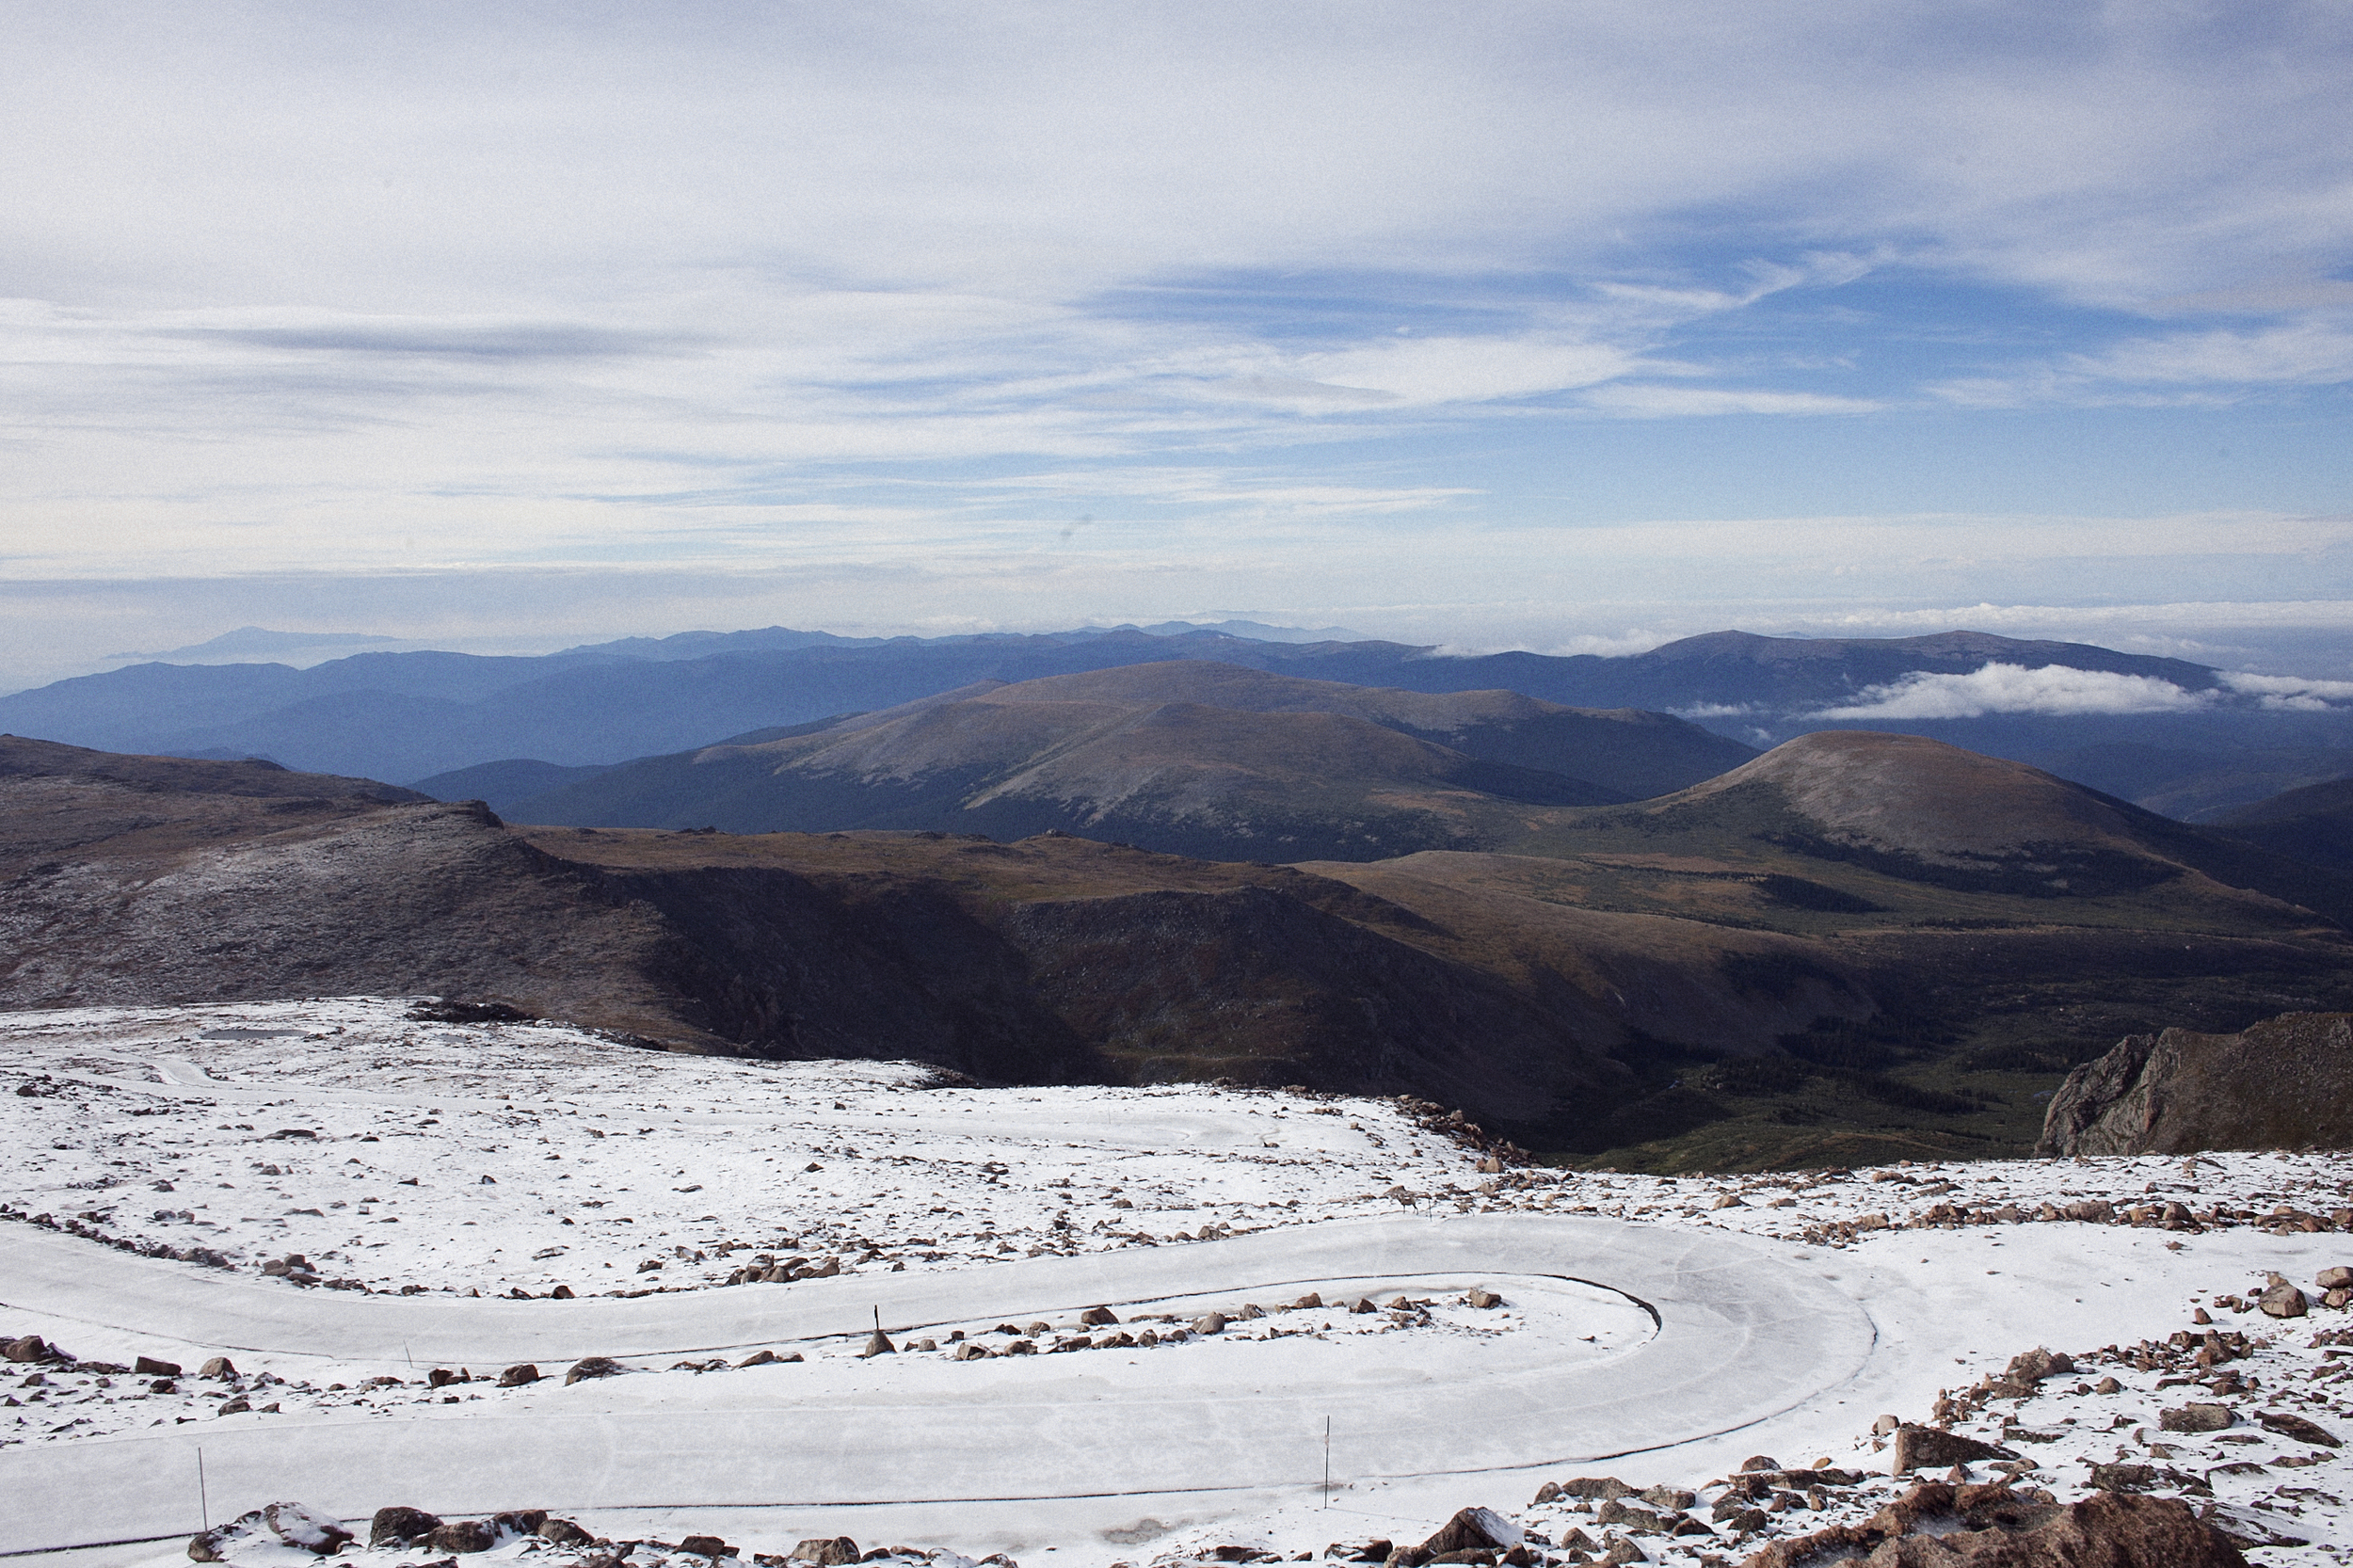 One of the friendlier patches of Mt Evans Rd